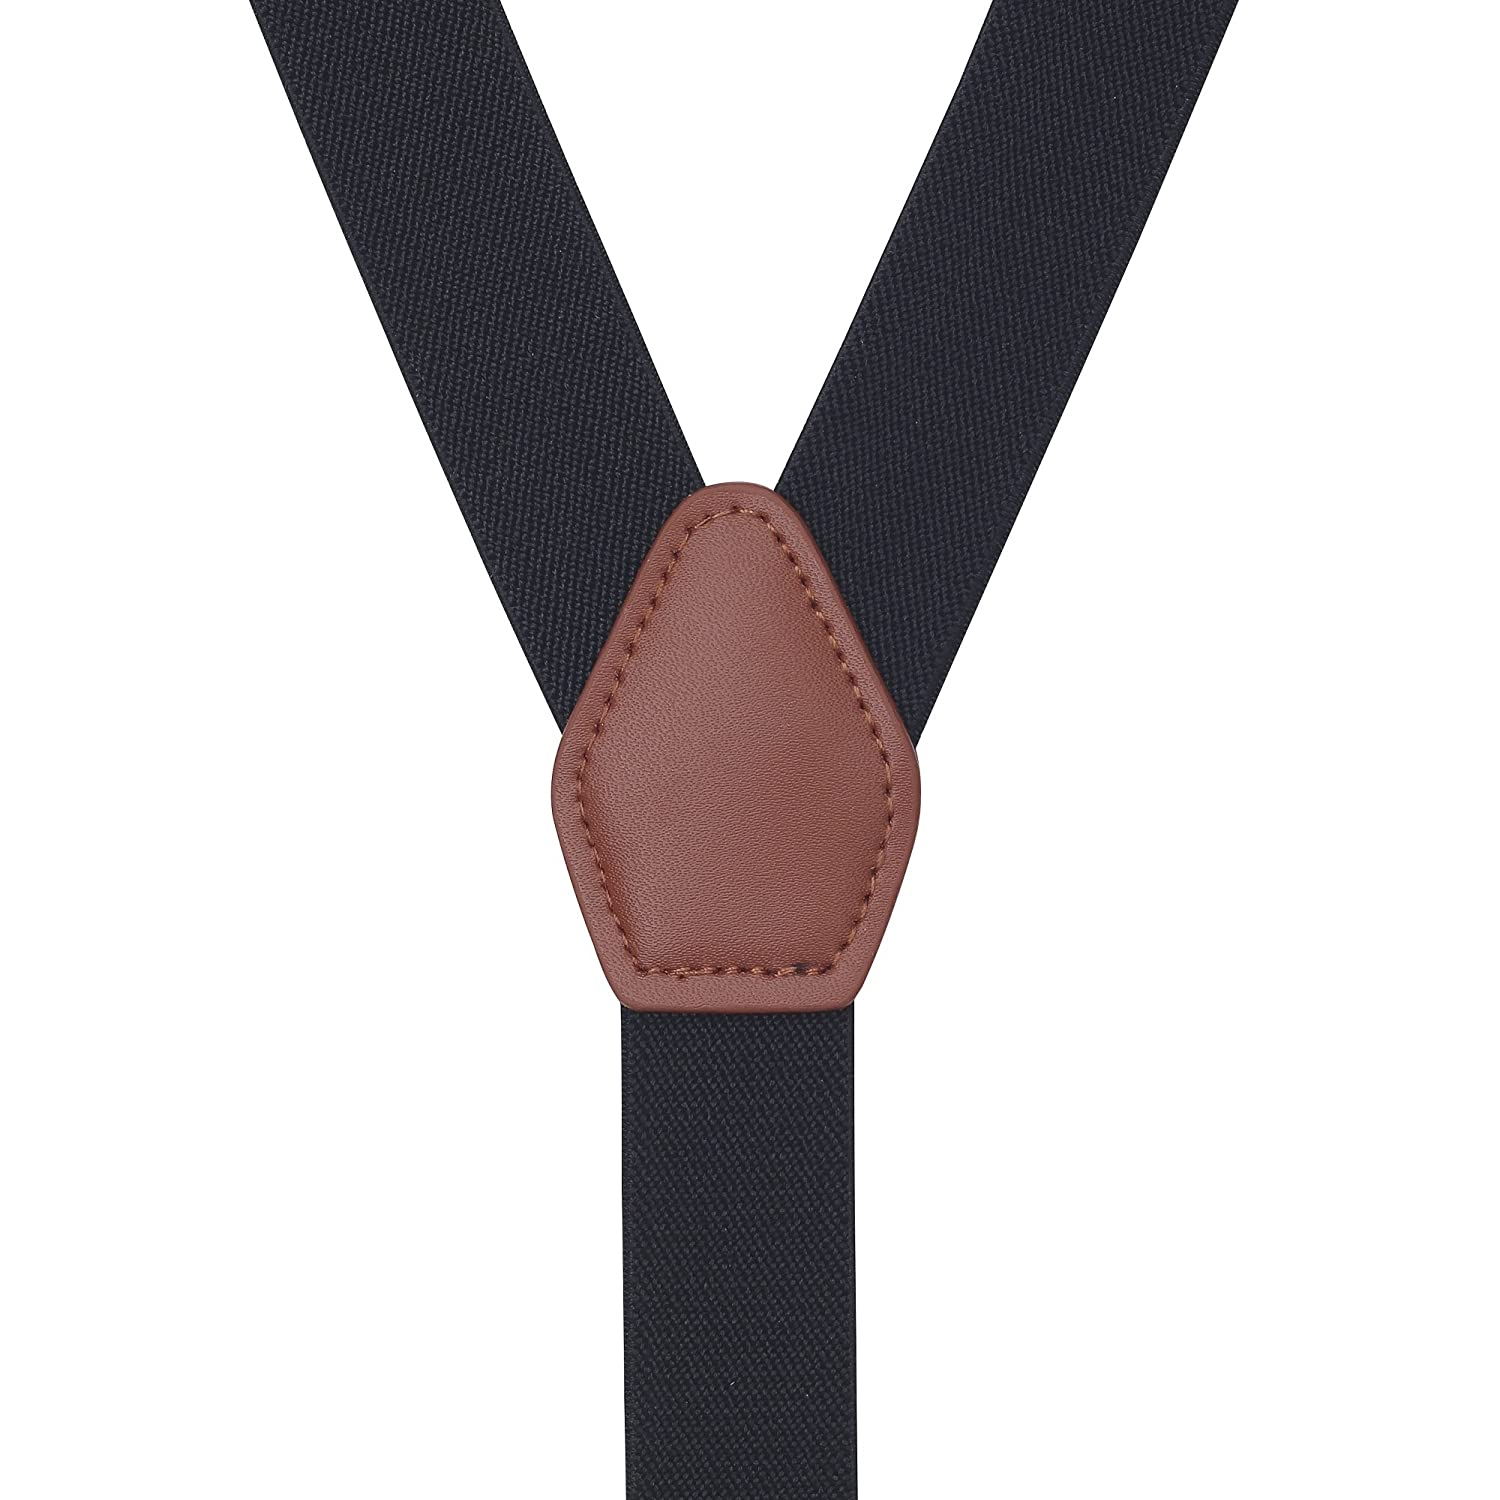 Irypulse Unisex Braces with Bow Tie Set 3 Retro Clips Men Women Teenagers Y-Shape Chic Suspenders Fit for 150-180cm Height